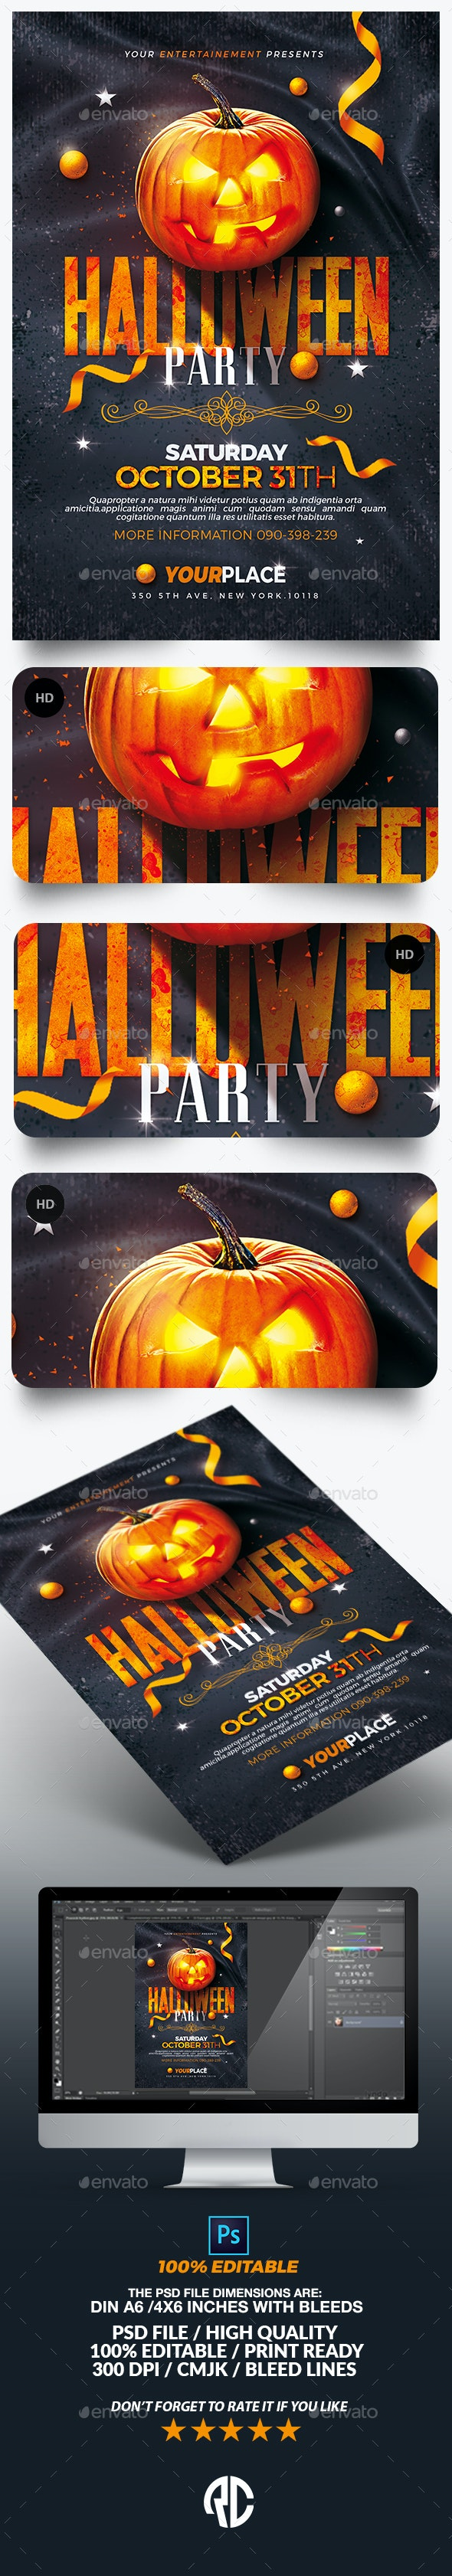 Classy Halloween Party Flyer Template - Events Flyers